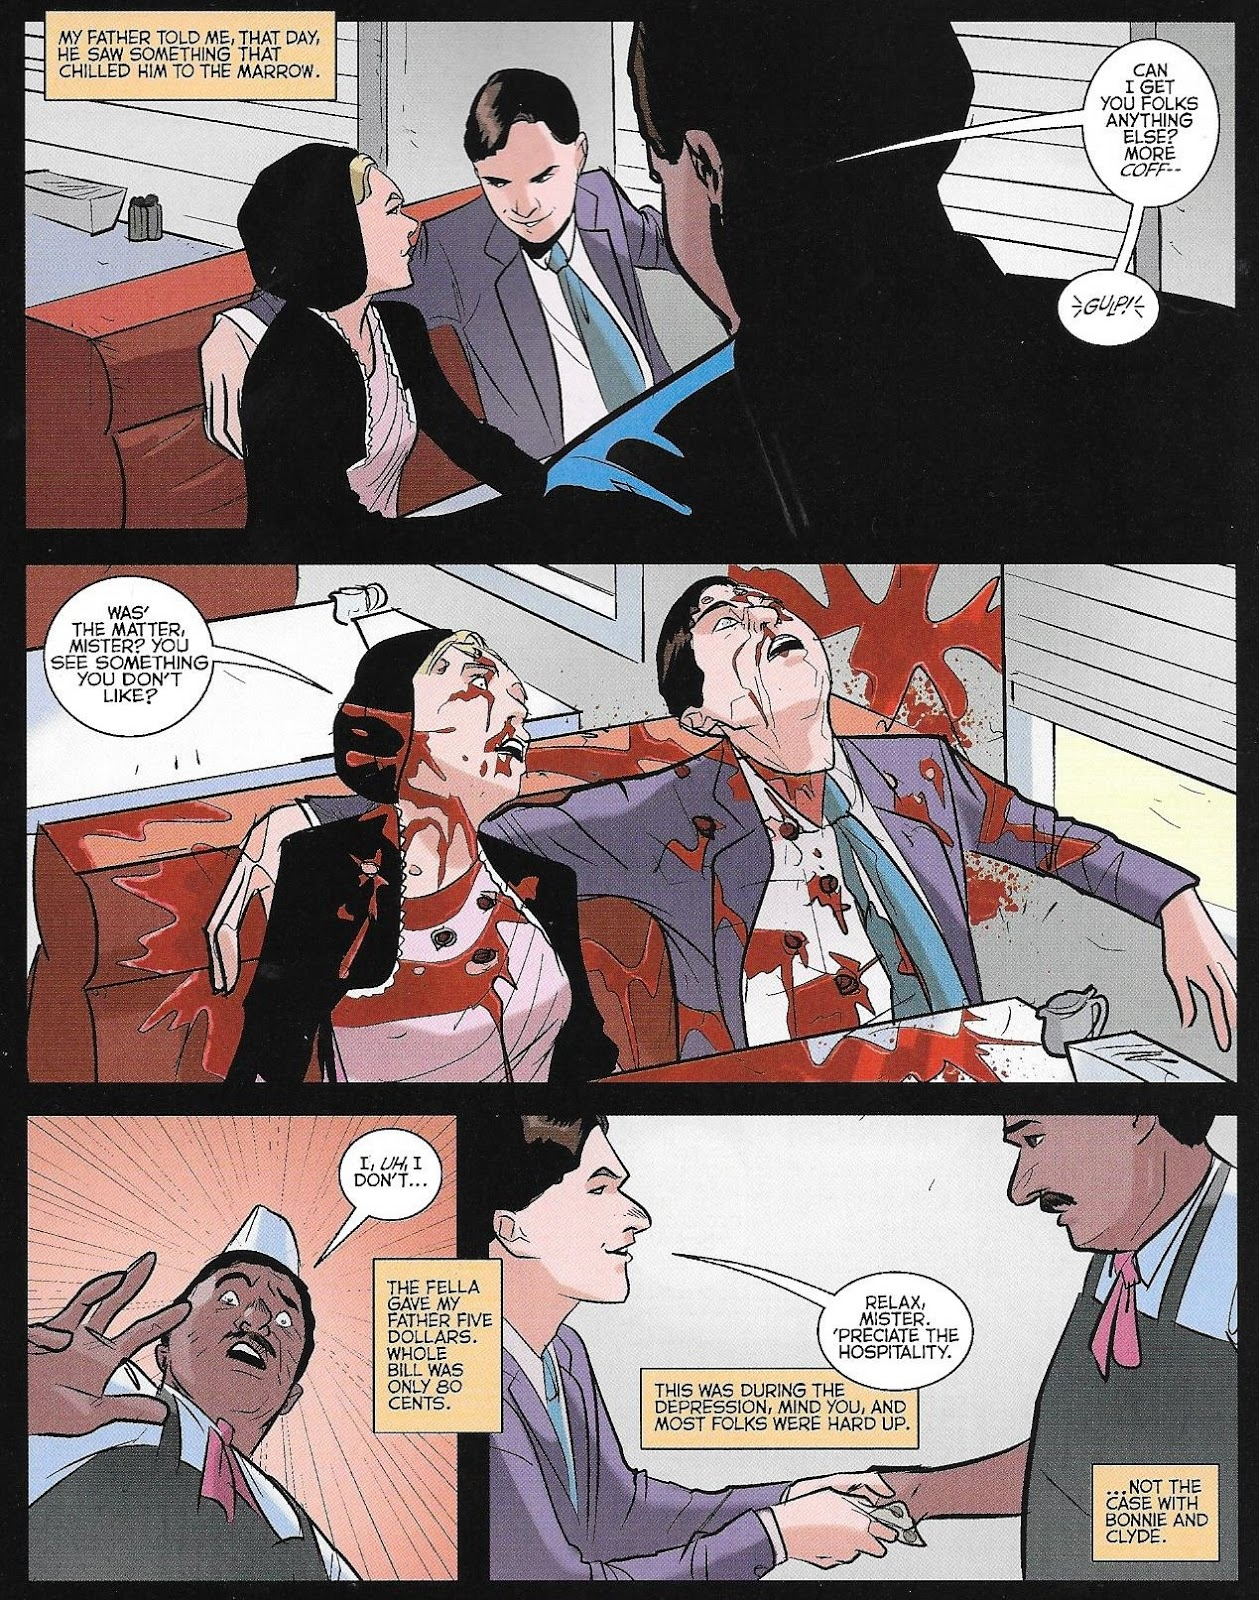 Jon's Blog: RIVERDALE #6: Did Pop Tate Sell His Soul to the Devil to